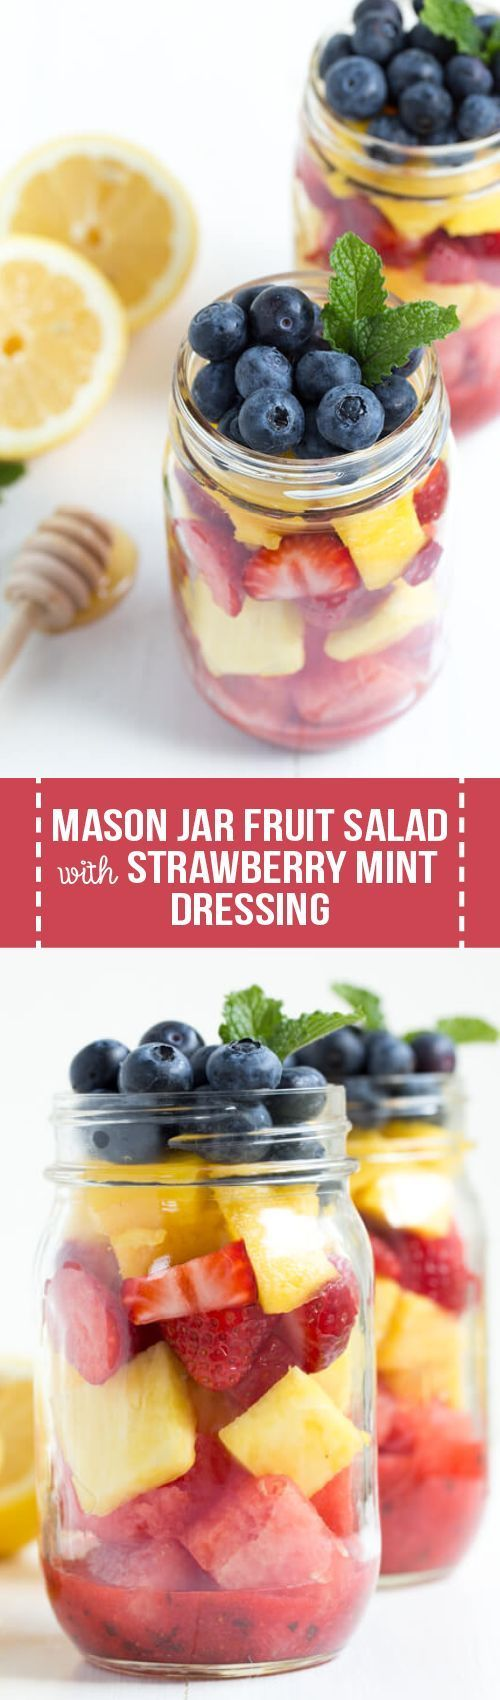 Mason Jar Fruit Salad is made with the freshest flavors piled high in a mason jar and topped with strawberry mint dressing. Kids and adults will love this quick, easy and healthy treat!